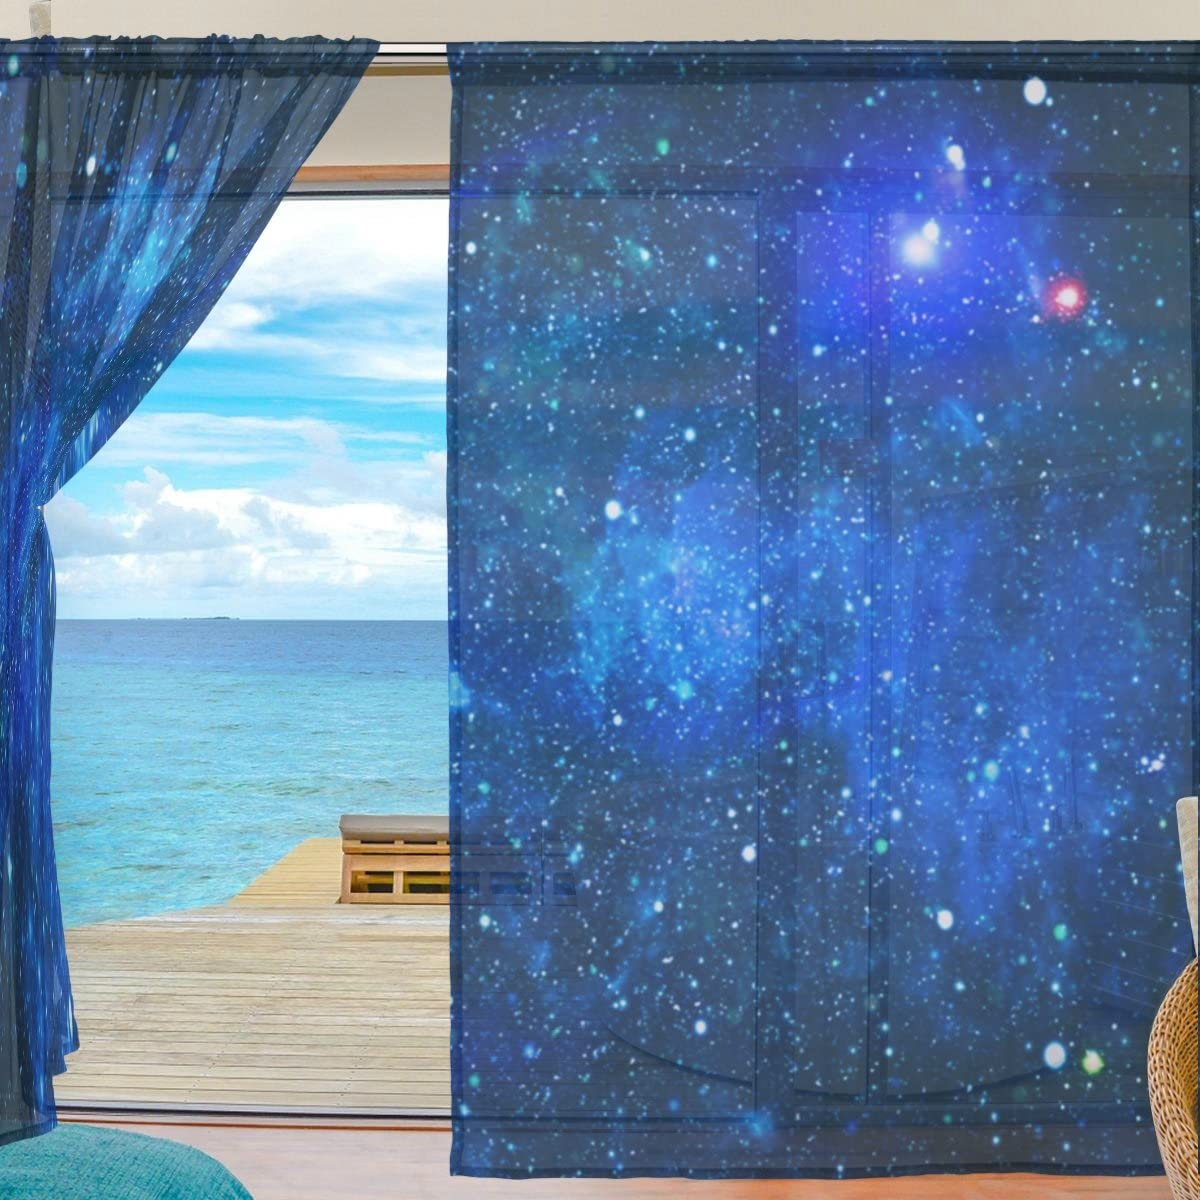 SEULIFE Window Sheer Curtain Universe Galaxy Nebula Deep Space Voile Curtain Drapes for Door Kitchen Living Room Bedroom 55x78 inches 2 Panels